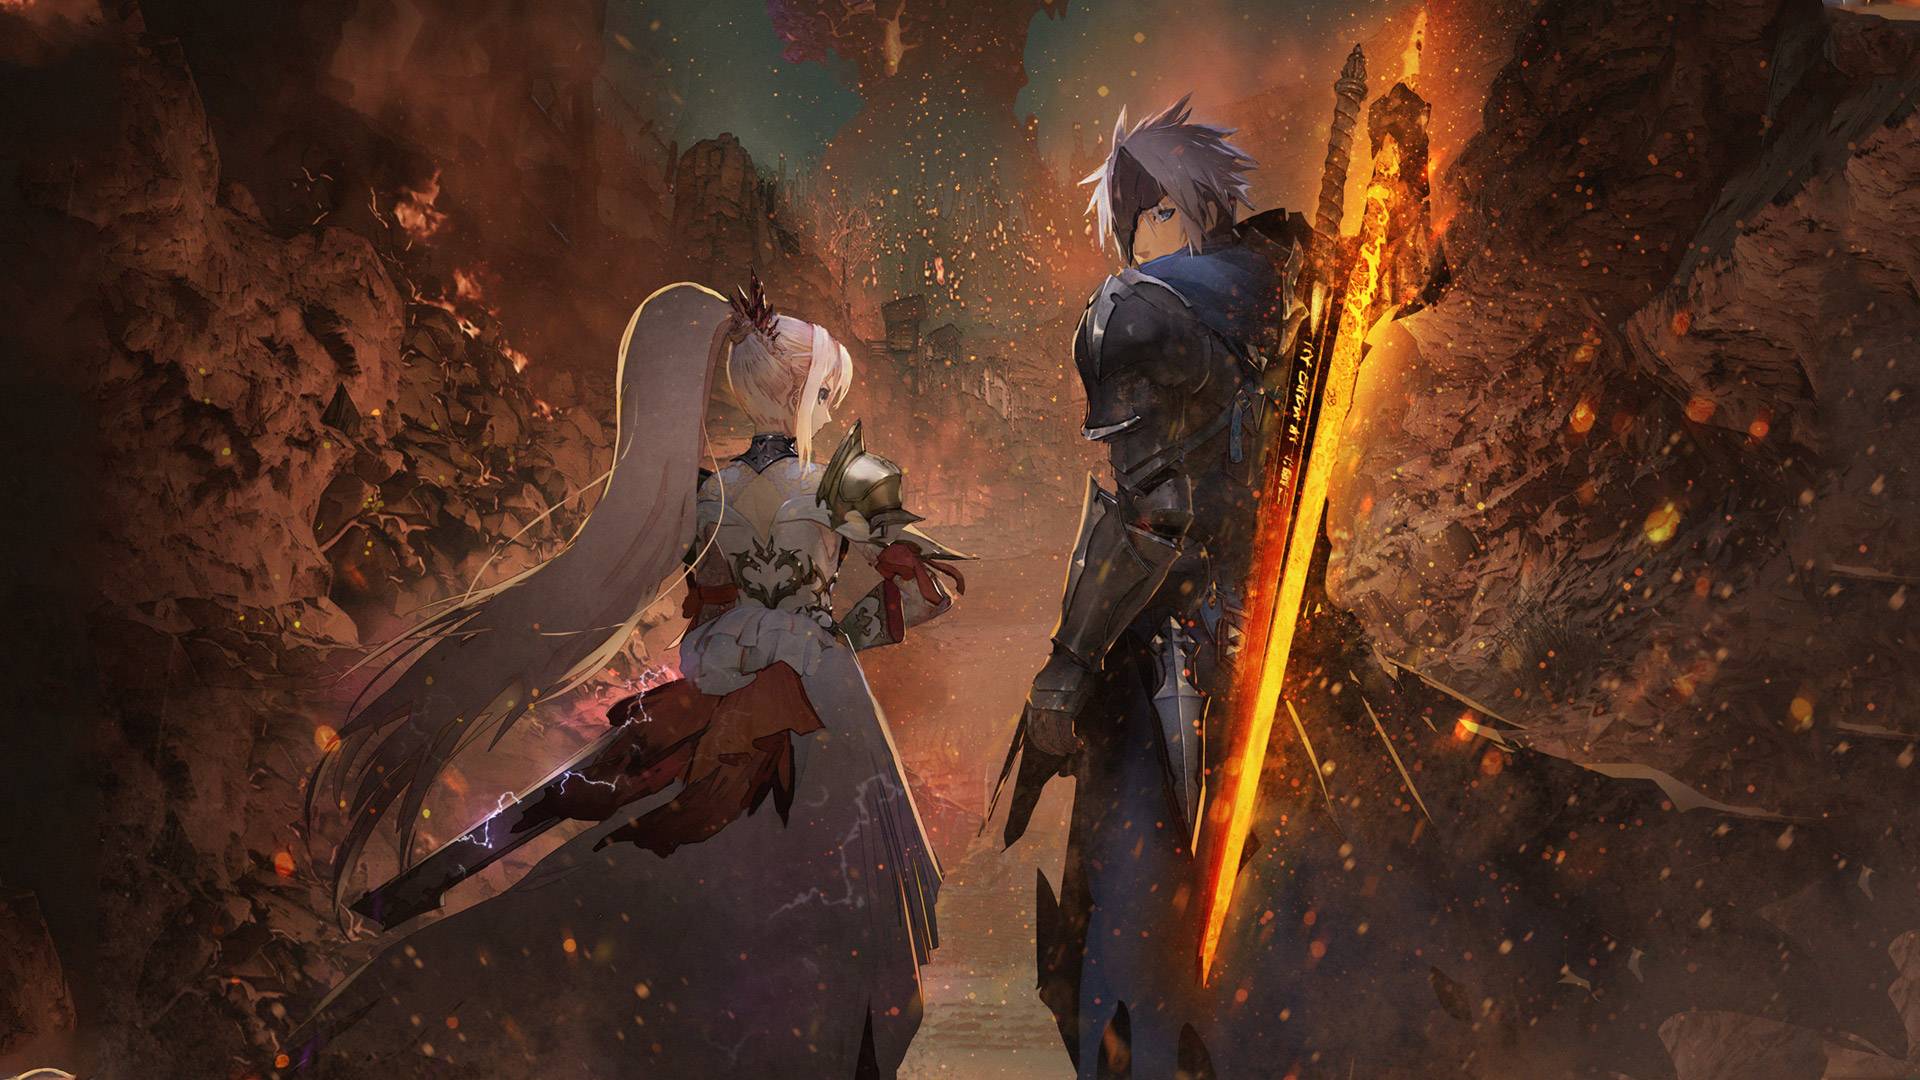 Free Tales of Arise Wallpaper in 1920x1080